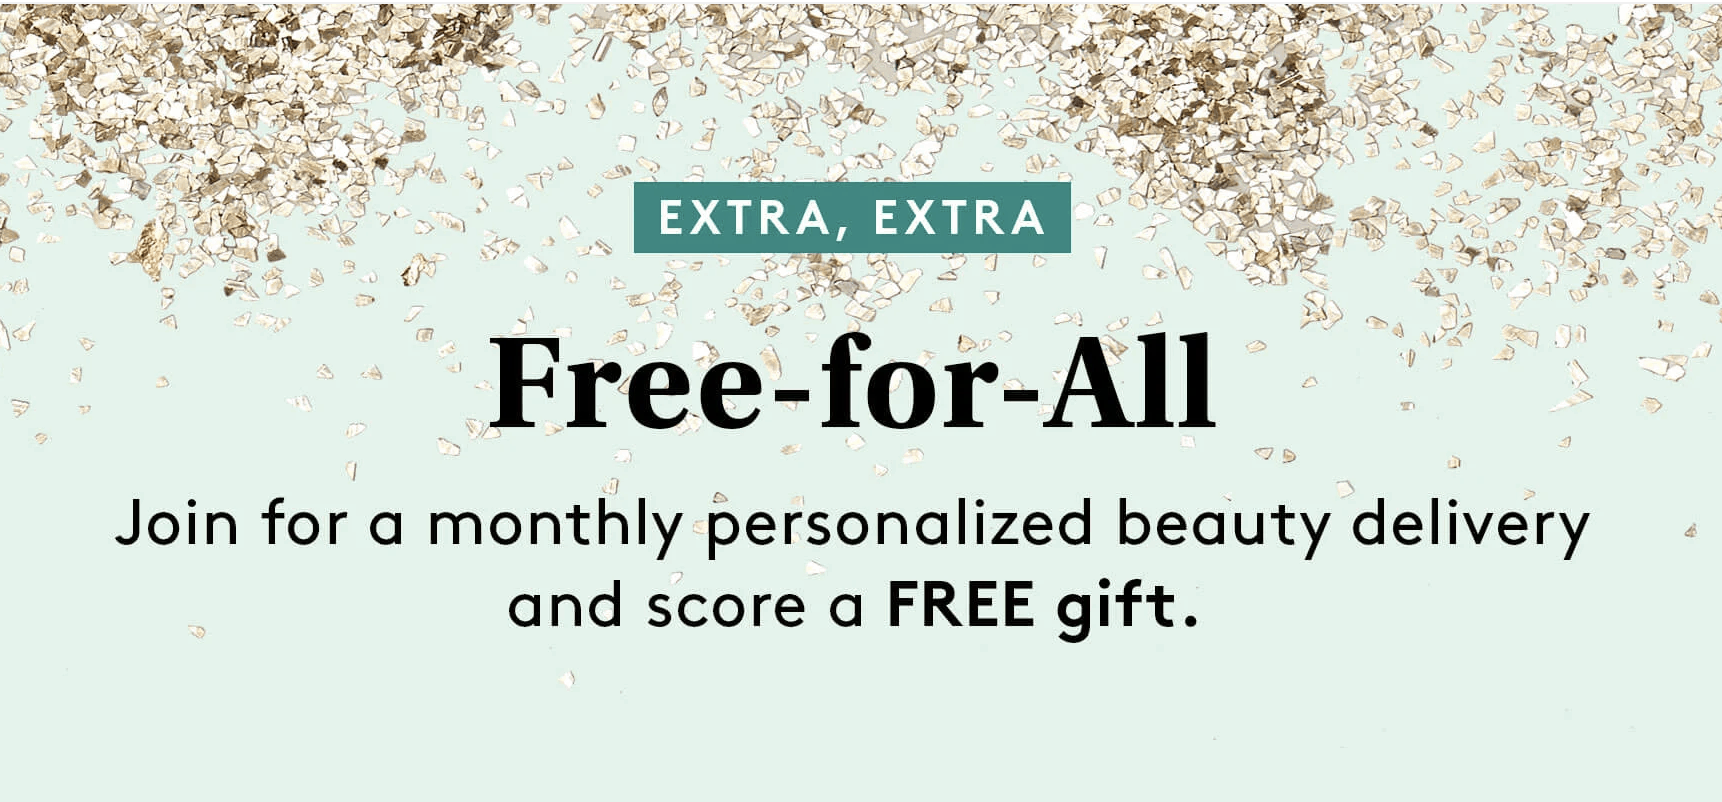 Birchbox Subscription Deals: FREE Gift with Subscription!